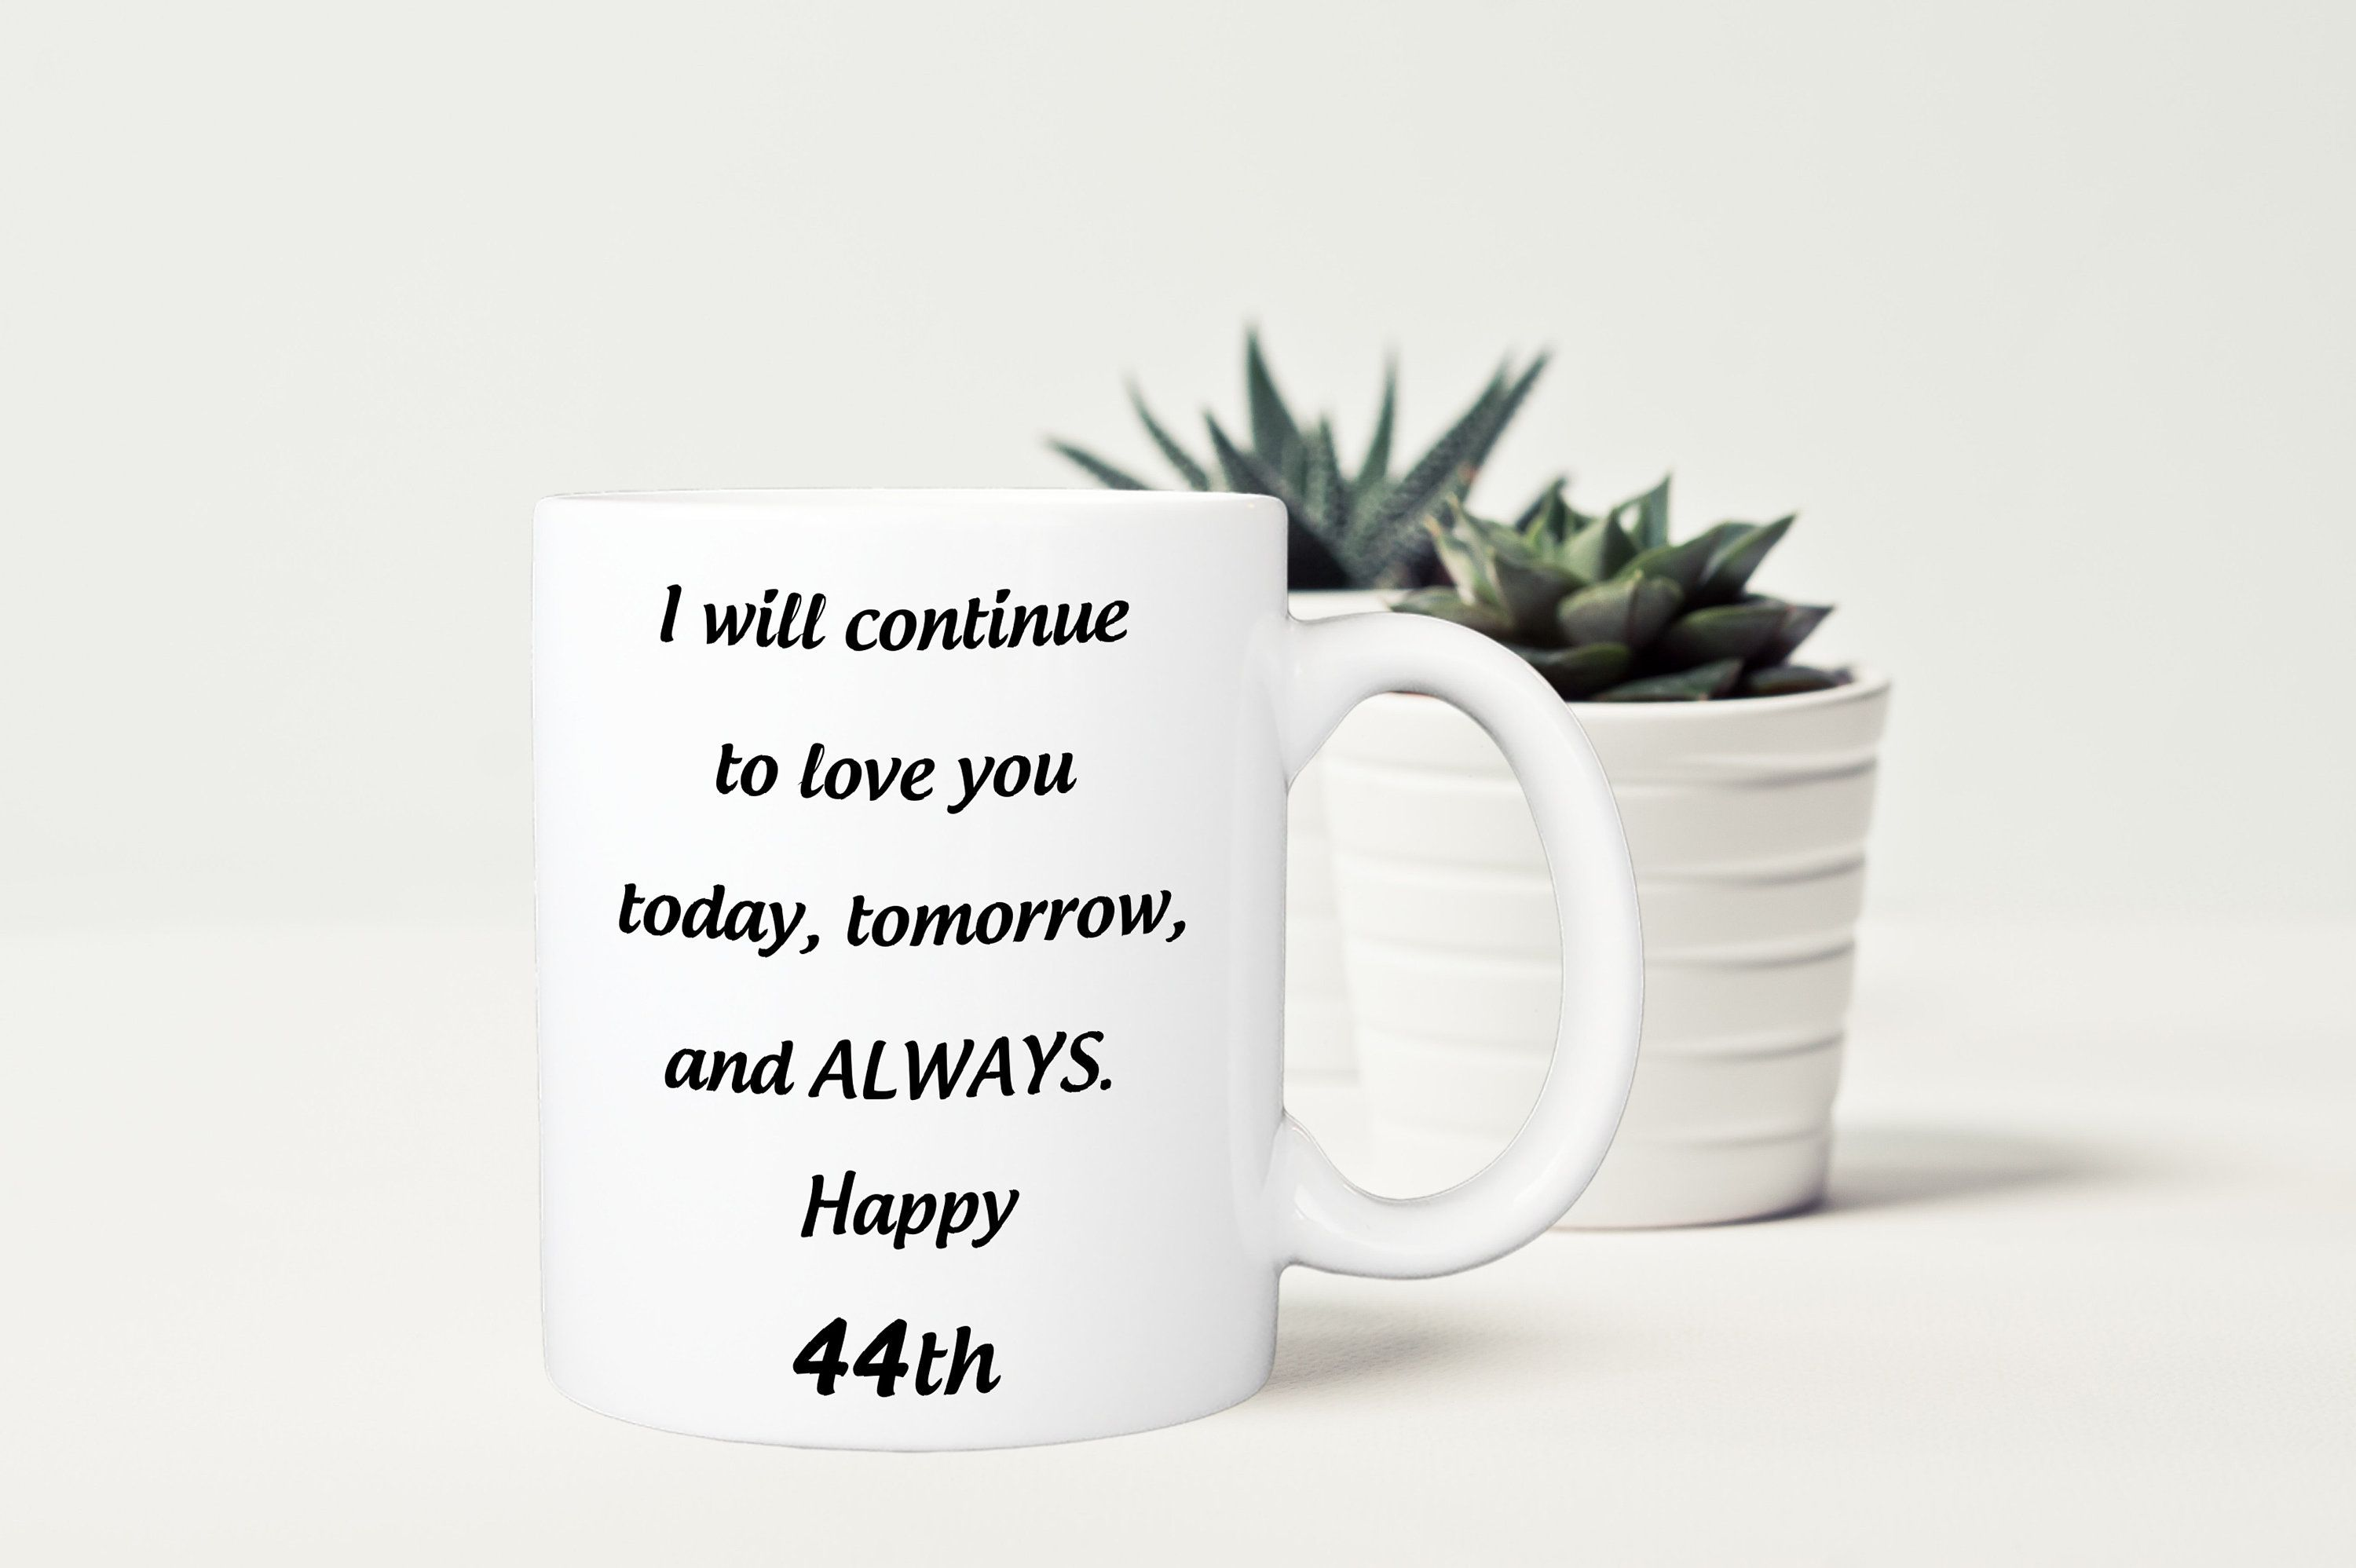 44th Anniversary Gift For Her, 44 Years Birthday Gift